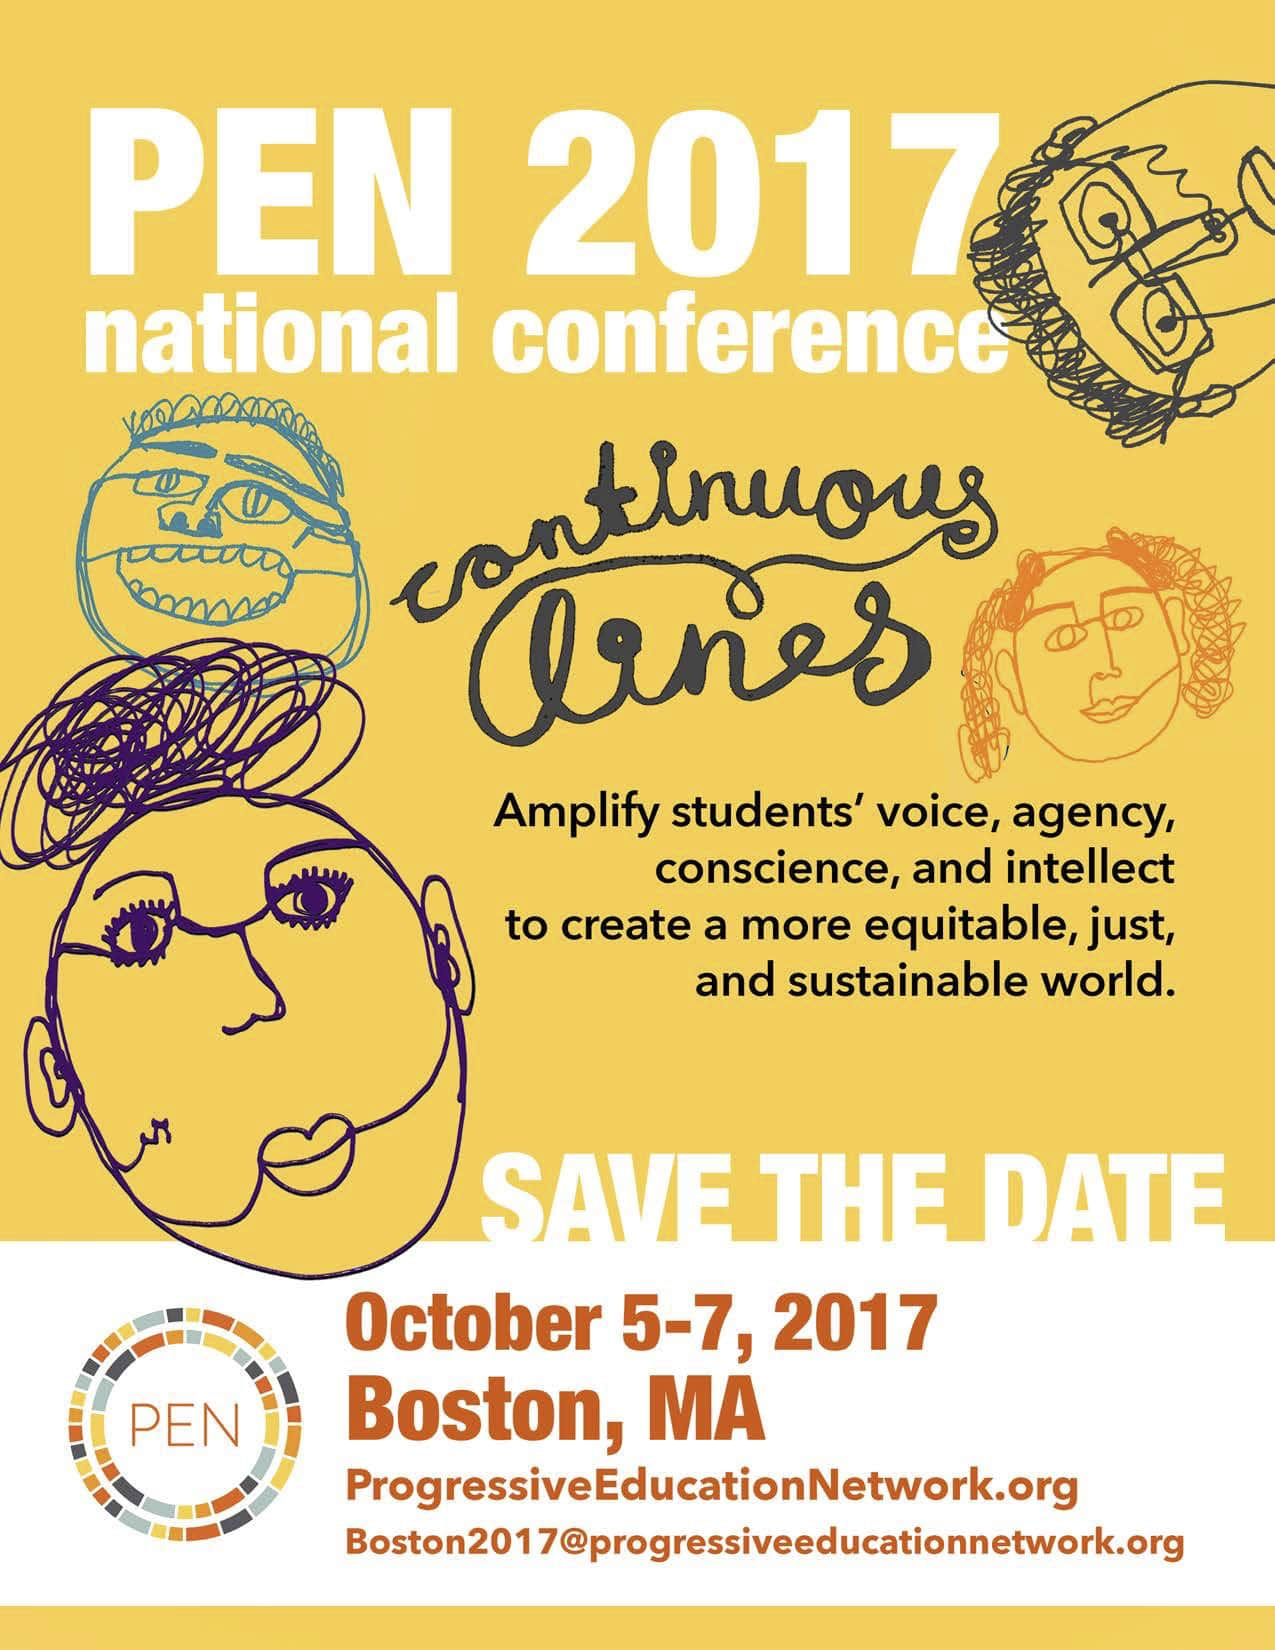 An illustrated poster to promote the PEN 2017 Conference in Boston, MA